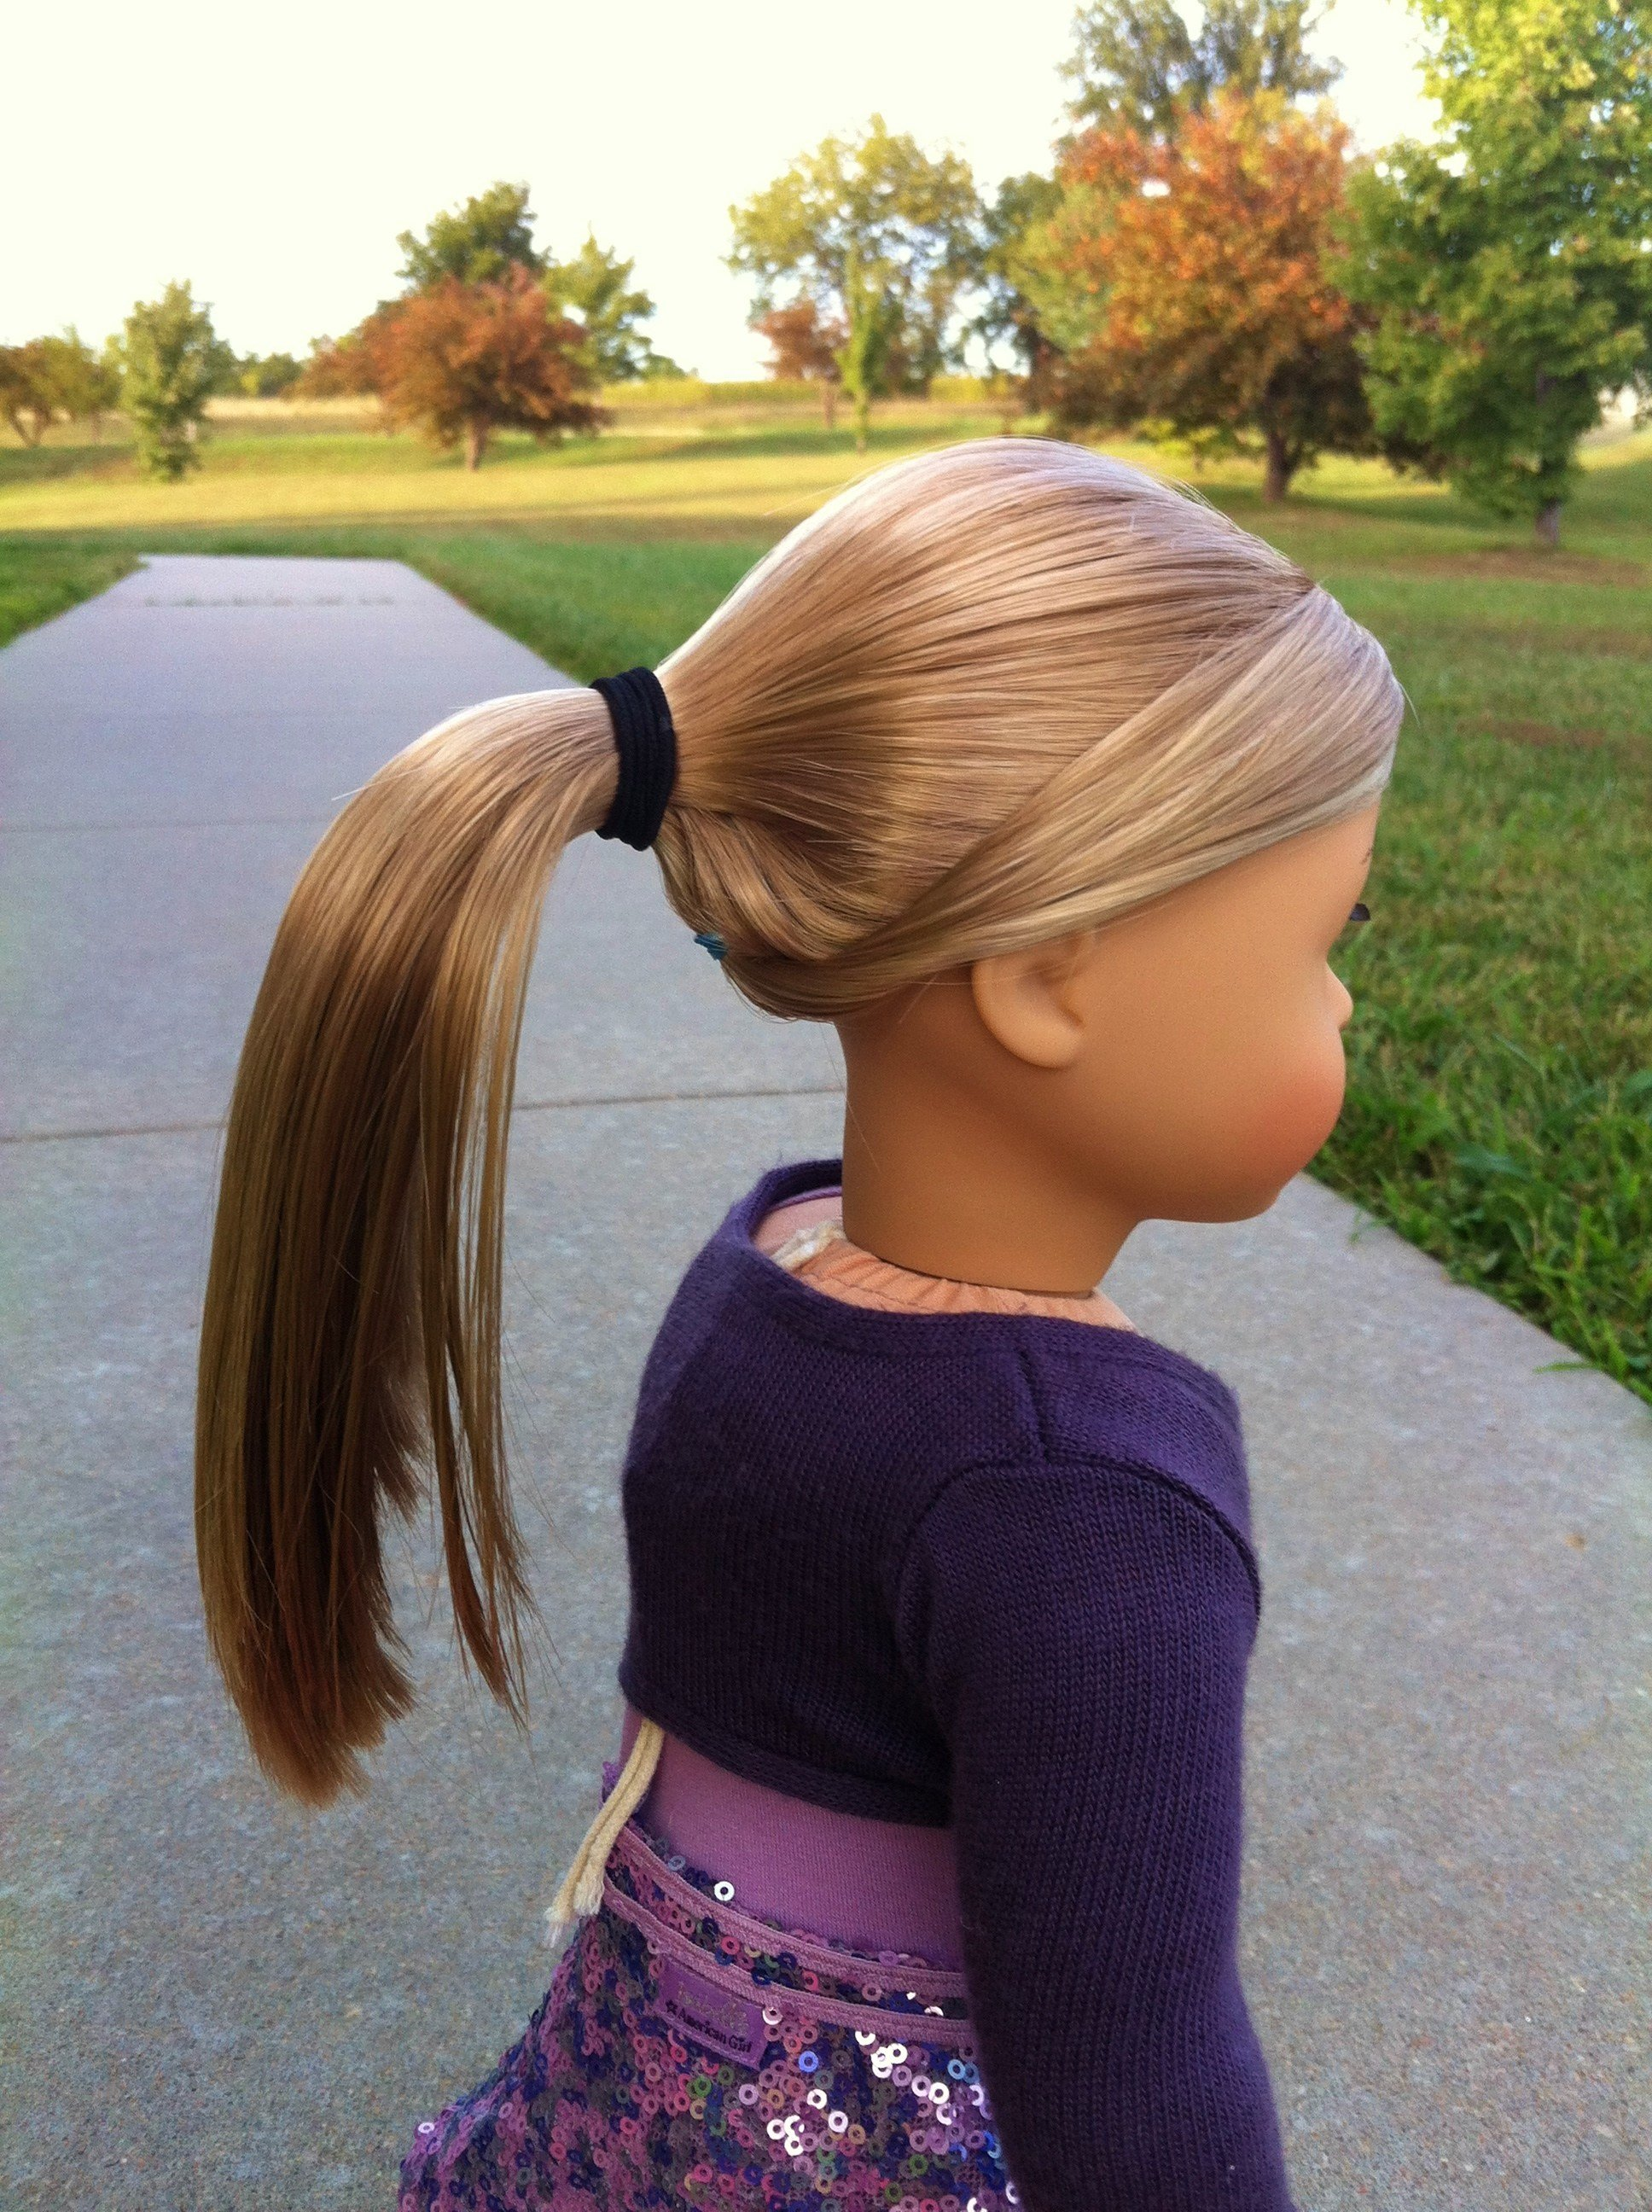 The Best Hairstyle Isabelle S Bangs Small Dolls In A Big World Pictures